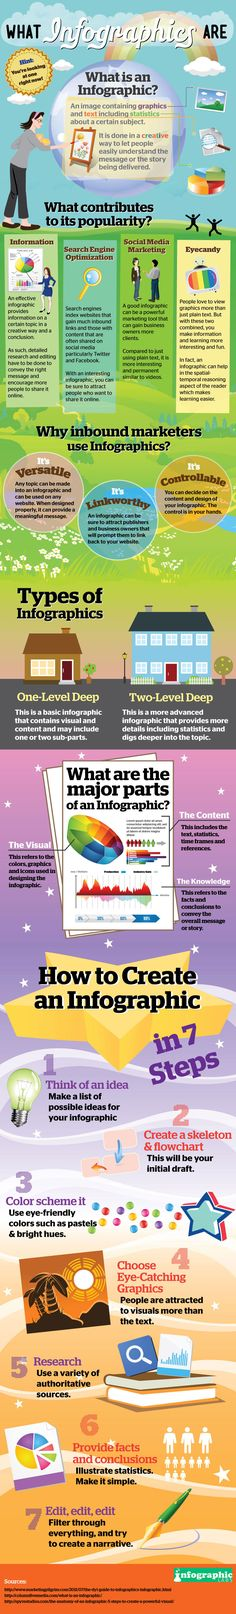 How To Create Your Own Infographics In 7 Steps [#Infographic] #socialmedia #content #marketing